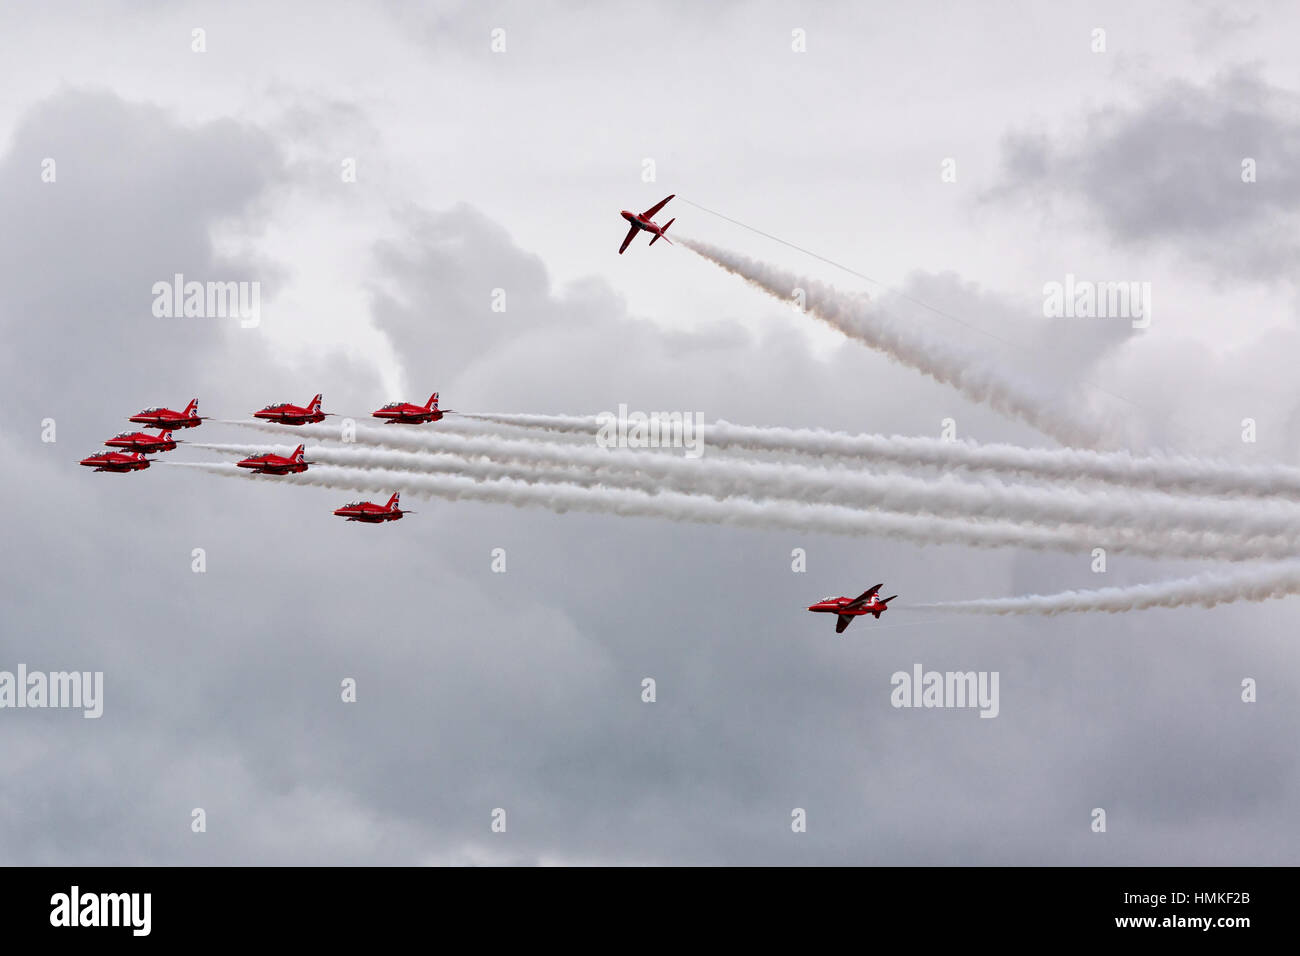 Bournemouth, Dorset, ENGLAND - August 21, 2016: Bournemouth Air Festival 2016 - Nine Hawk T Red Arrow jets perform - Stock Image